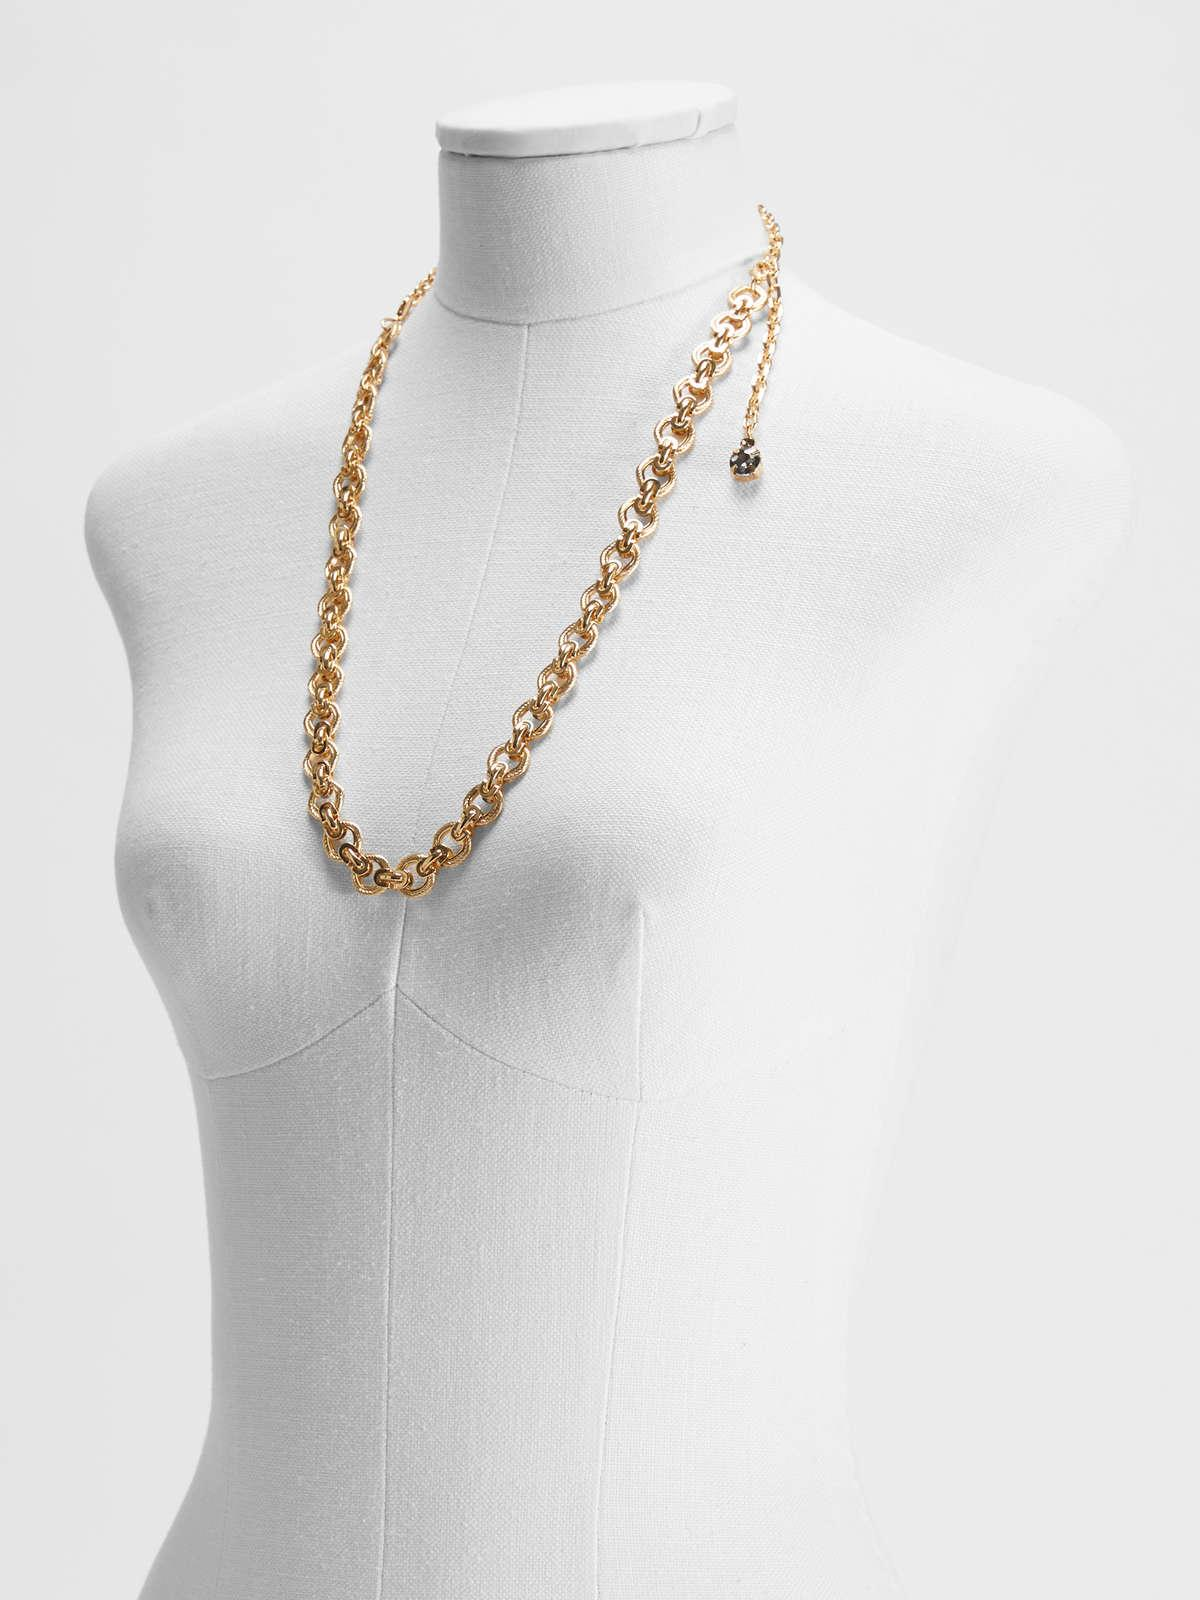 Womens Max Mara Jewelry   Glass And Metallic Necklace Gold